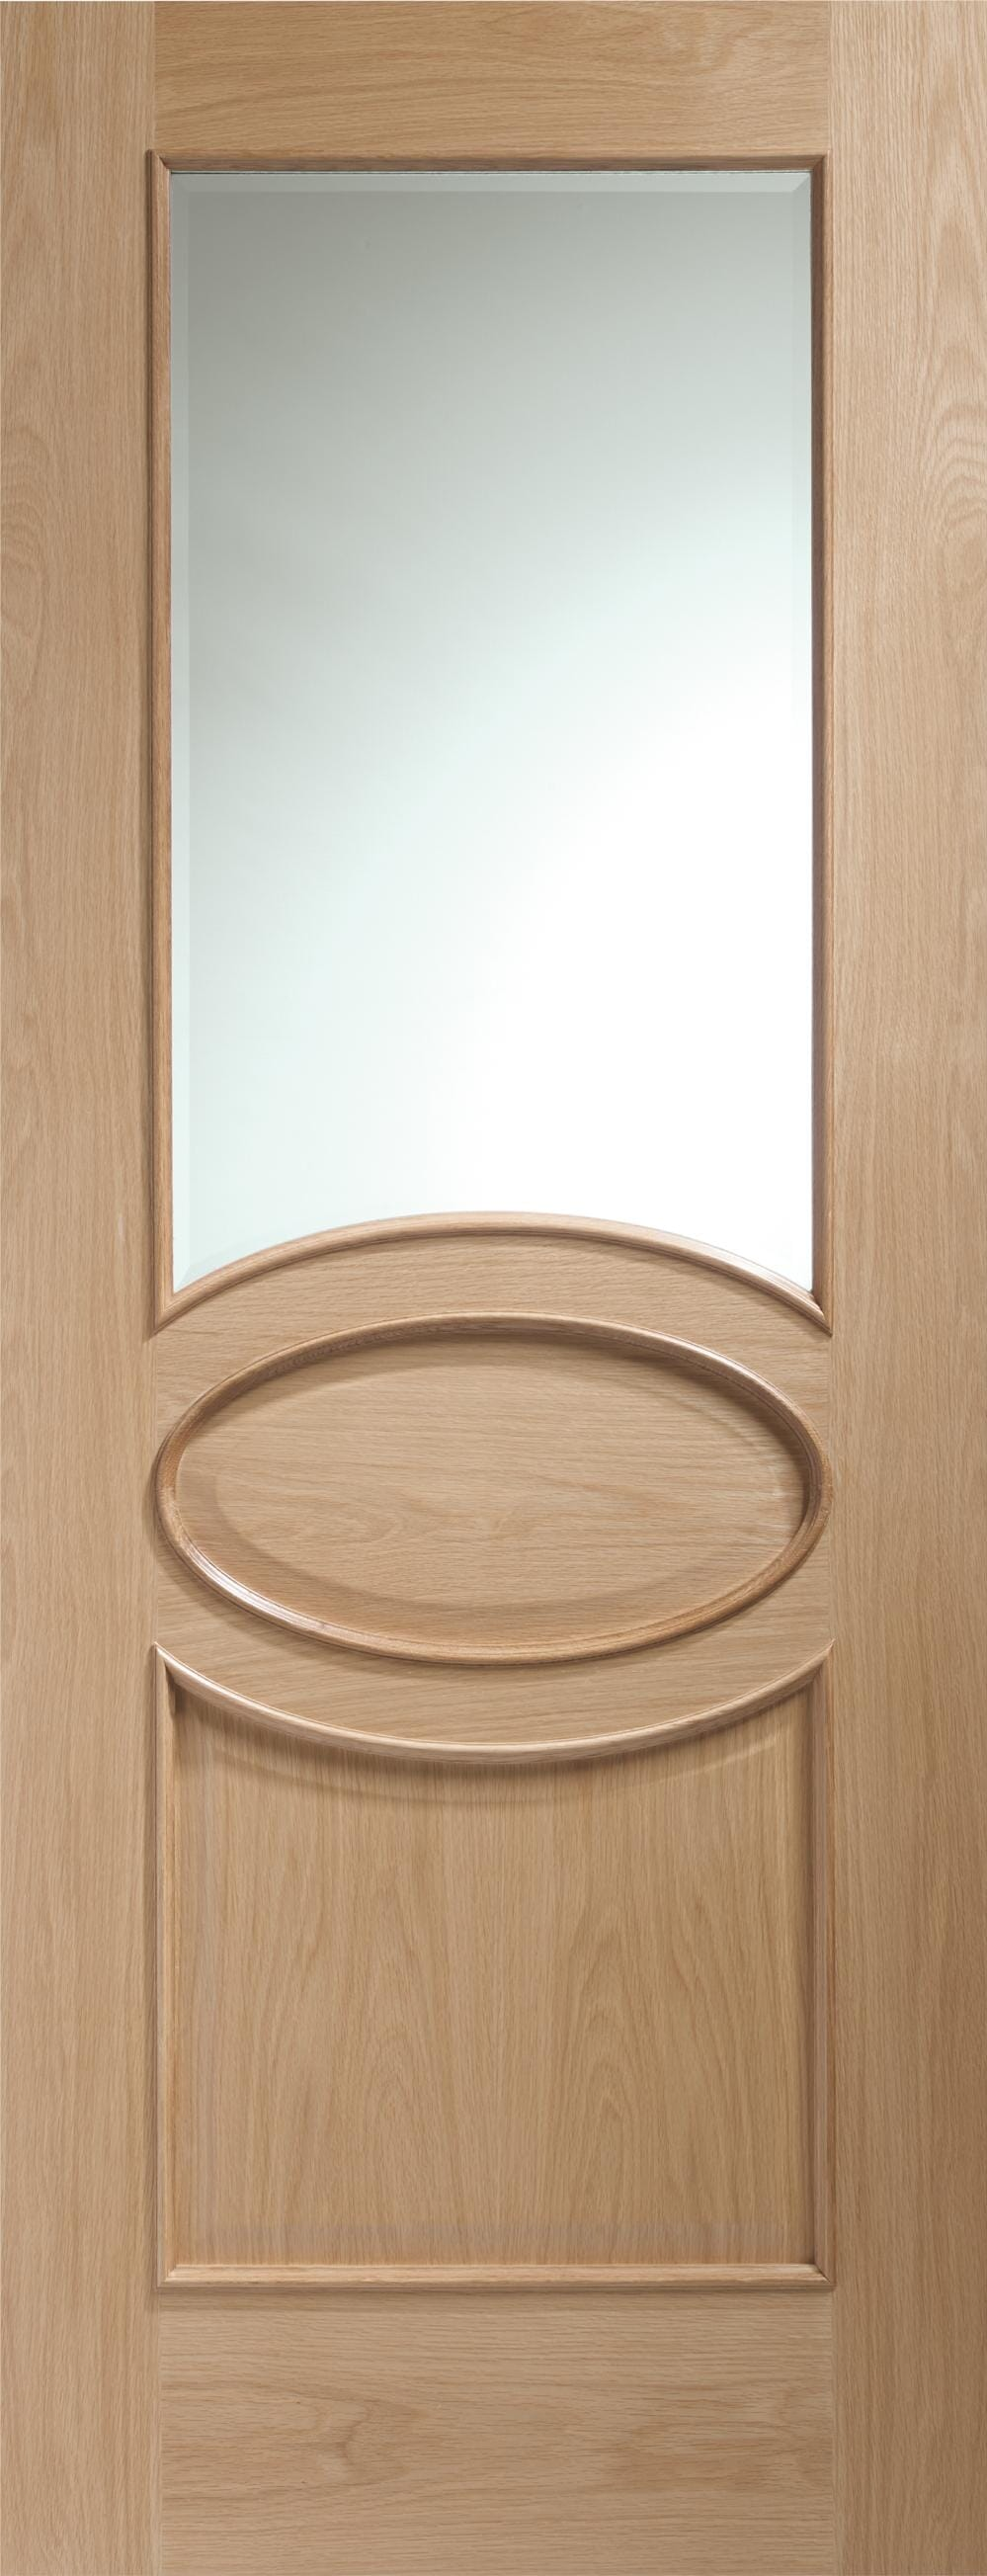 Calabria Oak Rm2s Clear Glazed - Xl Joinery Image